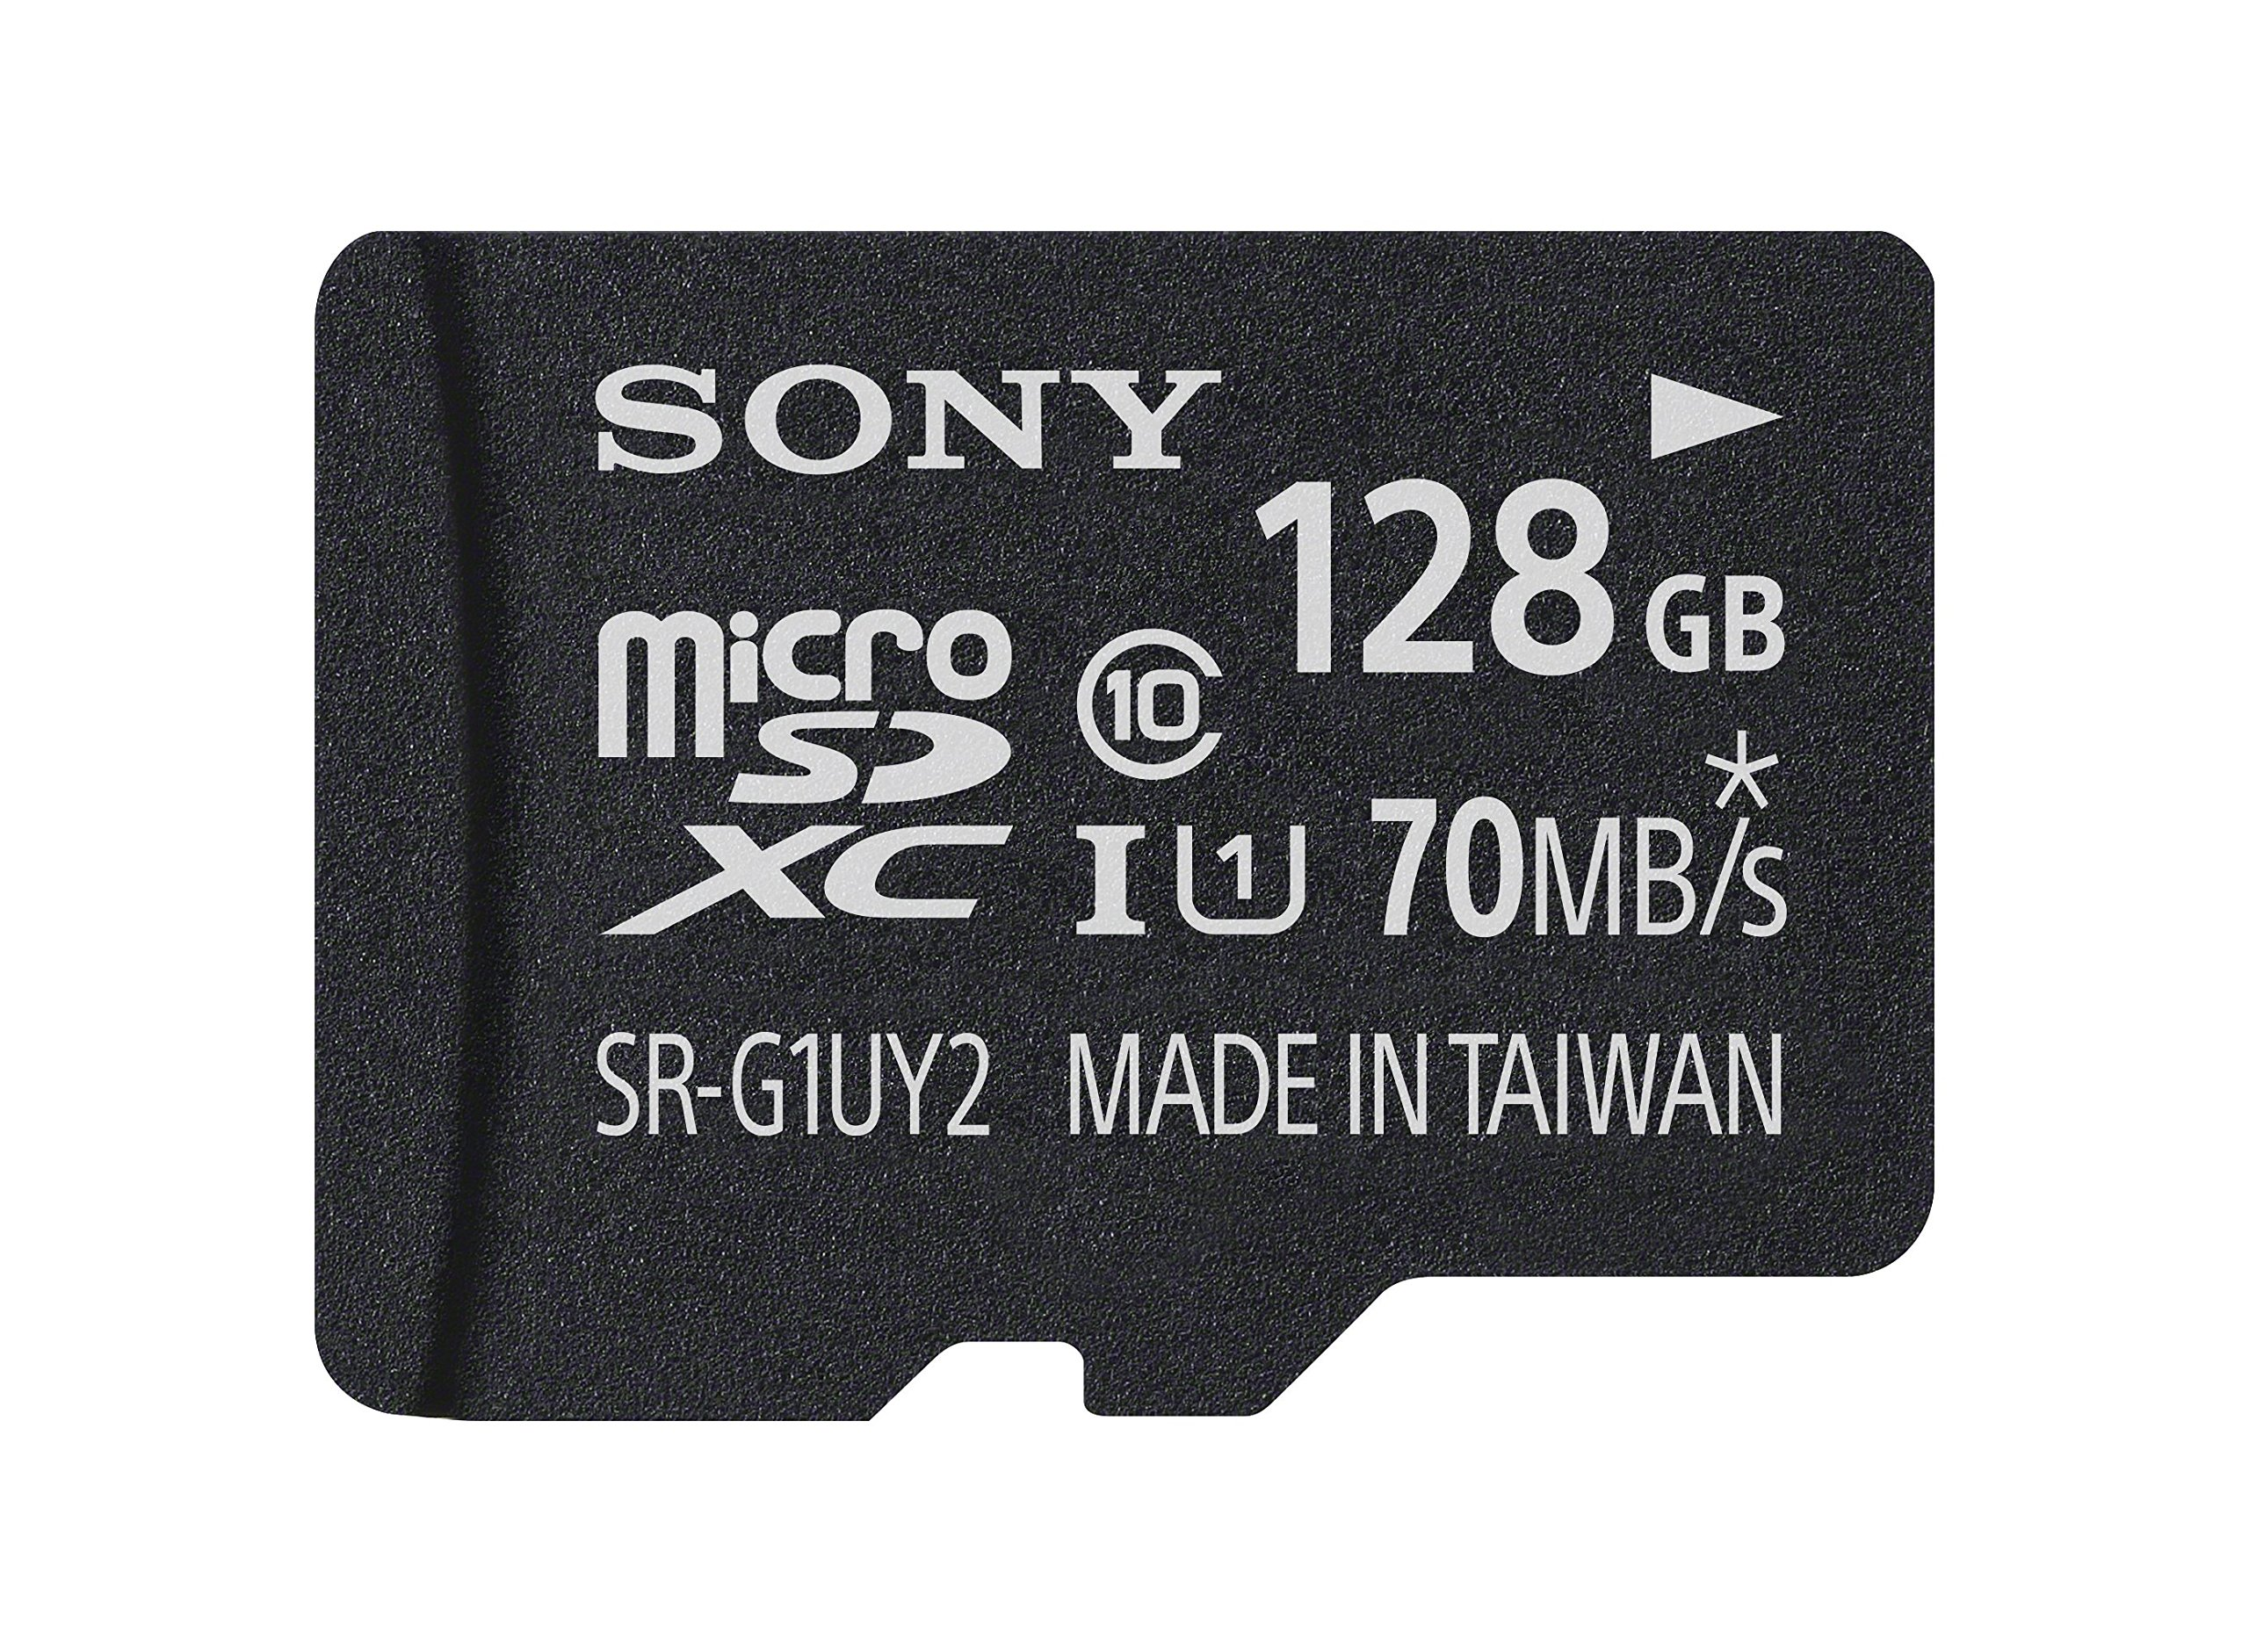 Sony 128GB Class 10 UHS-1 Micro SDXC up to 70MB/s Memory Card (SRG1UY2A/TQ)